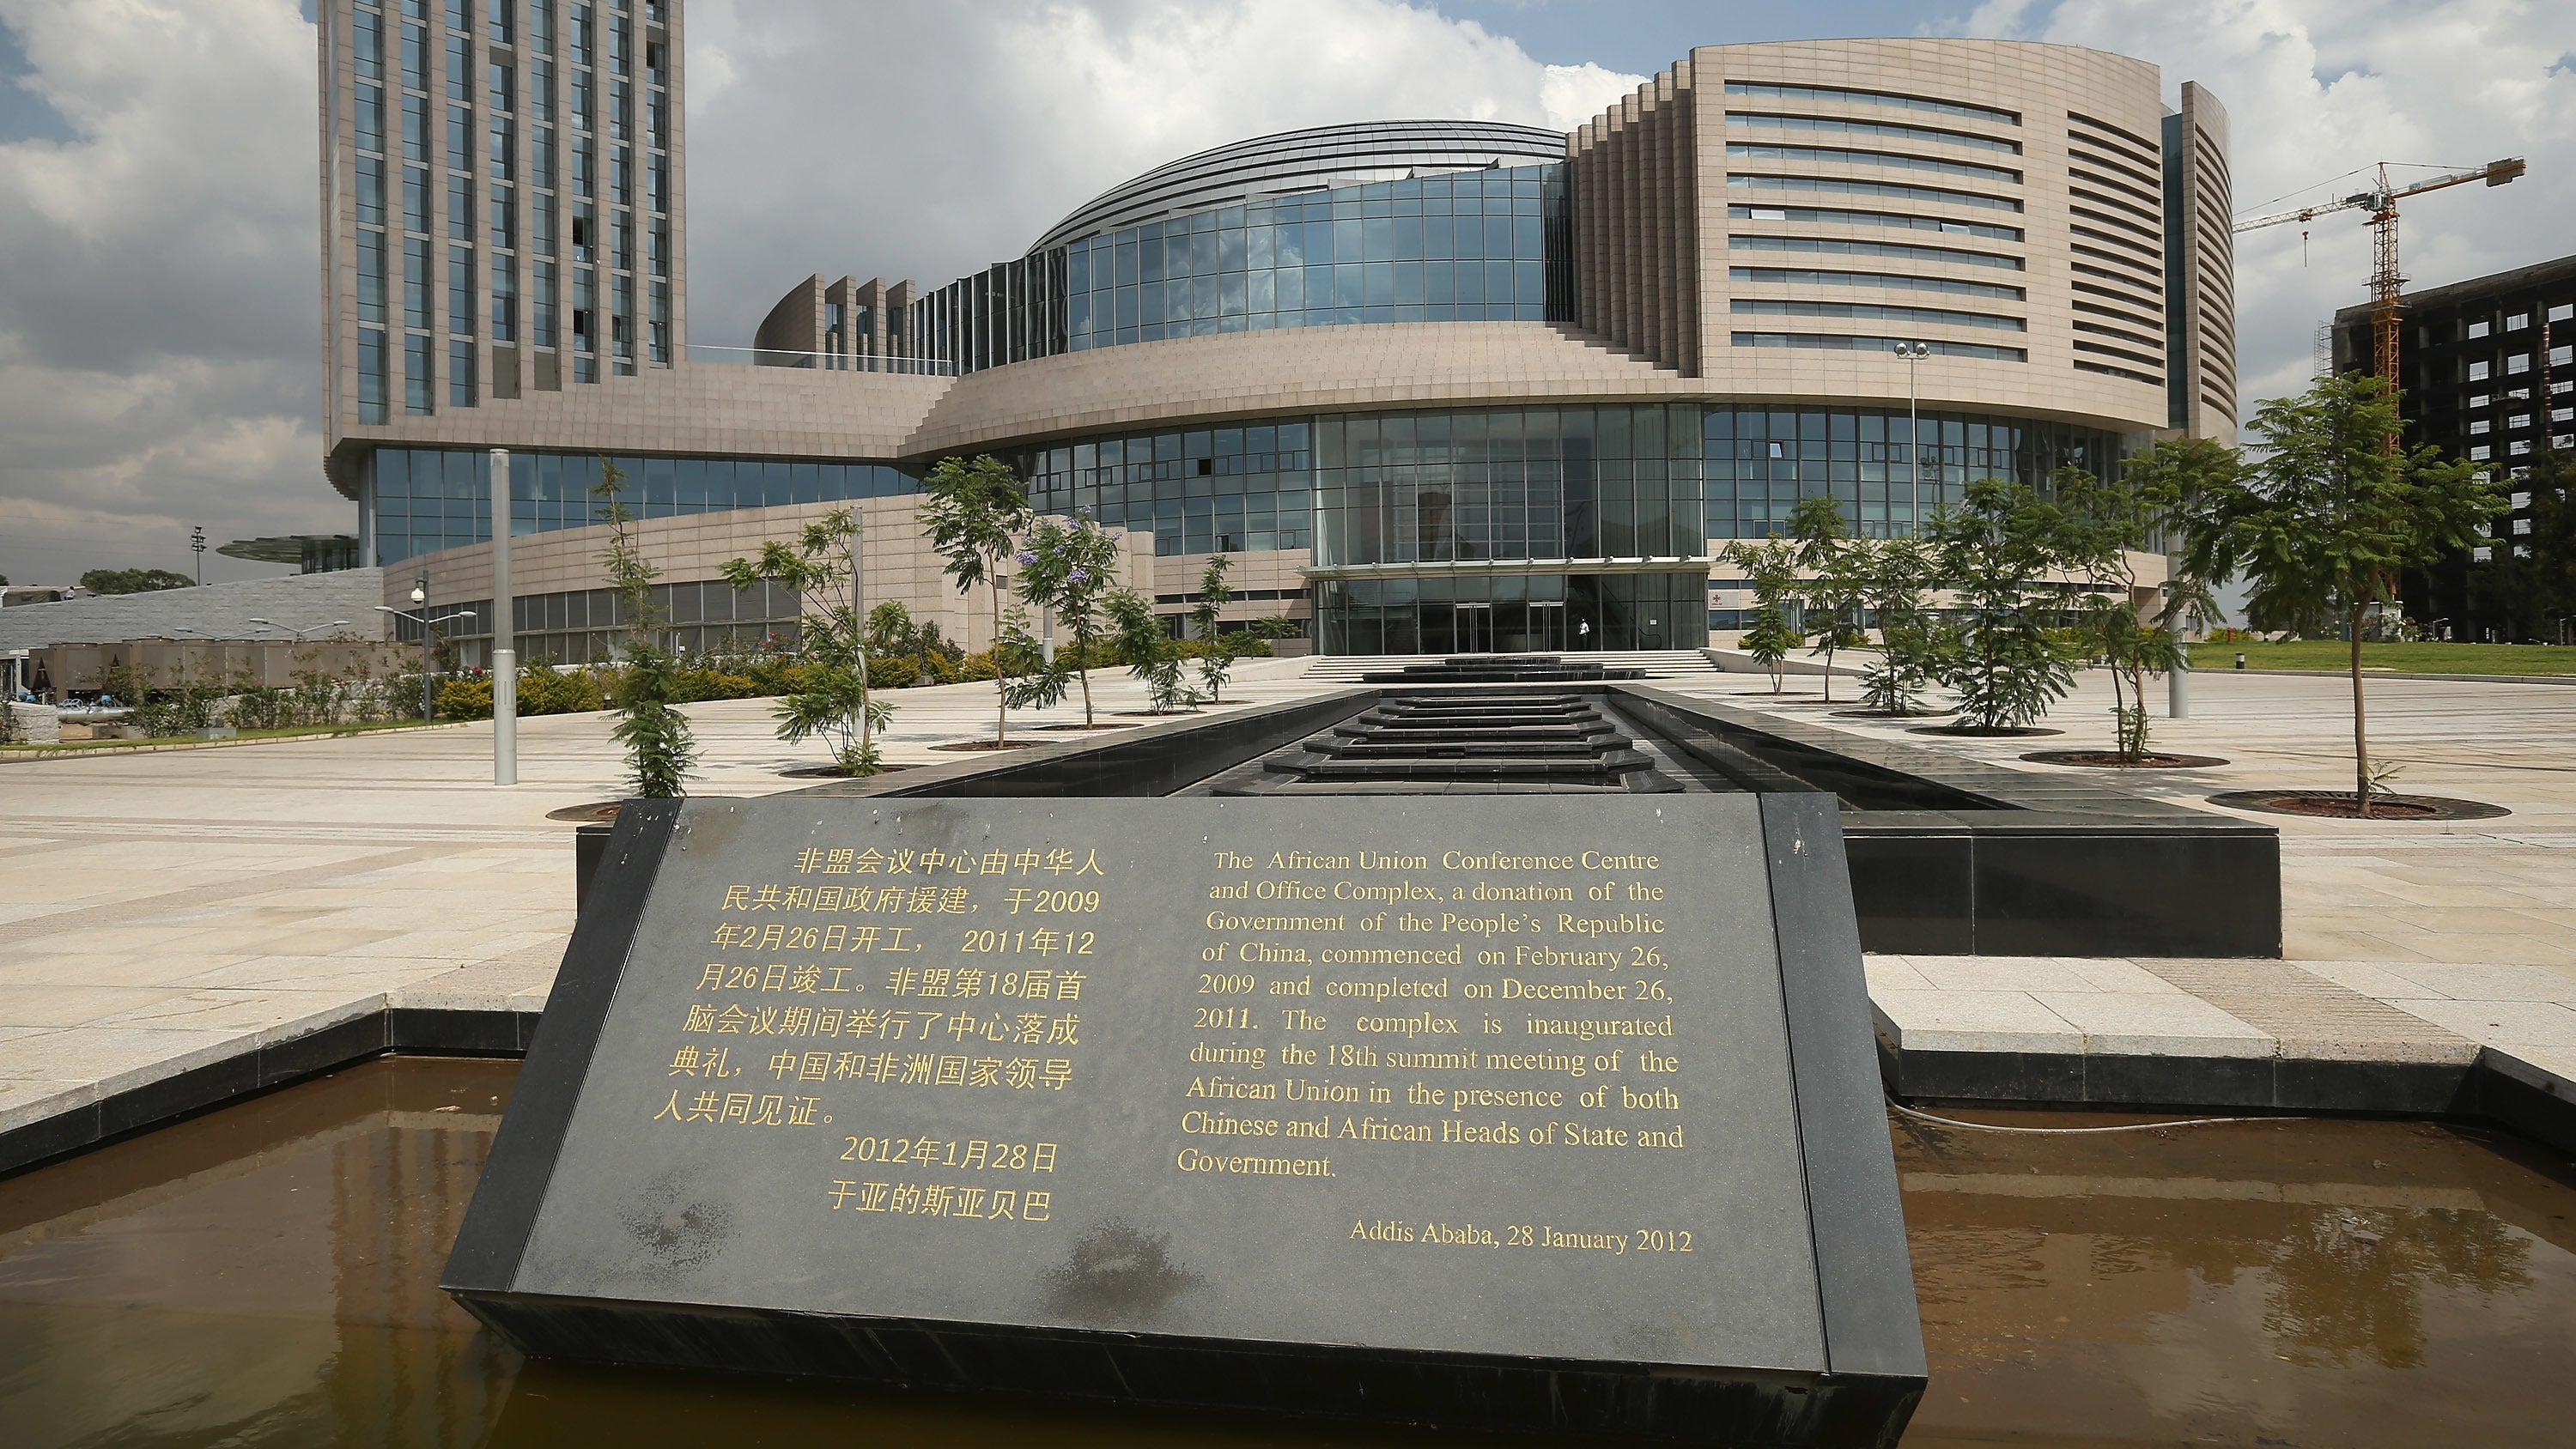 China Denies That It Gifted The African Union An HQ Building Stuffed Full Of Surveillance Devices